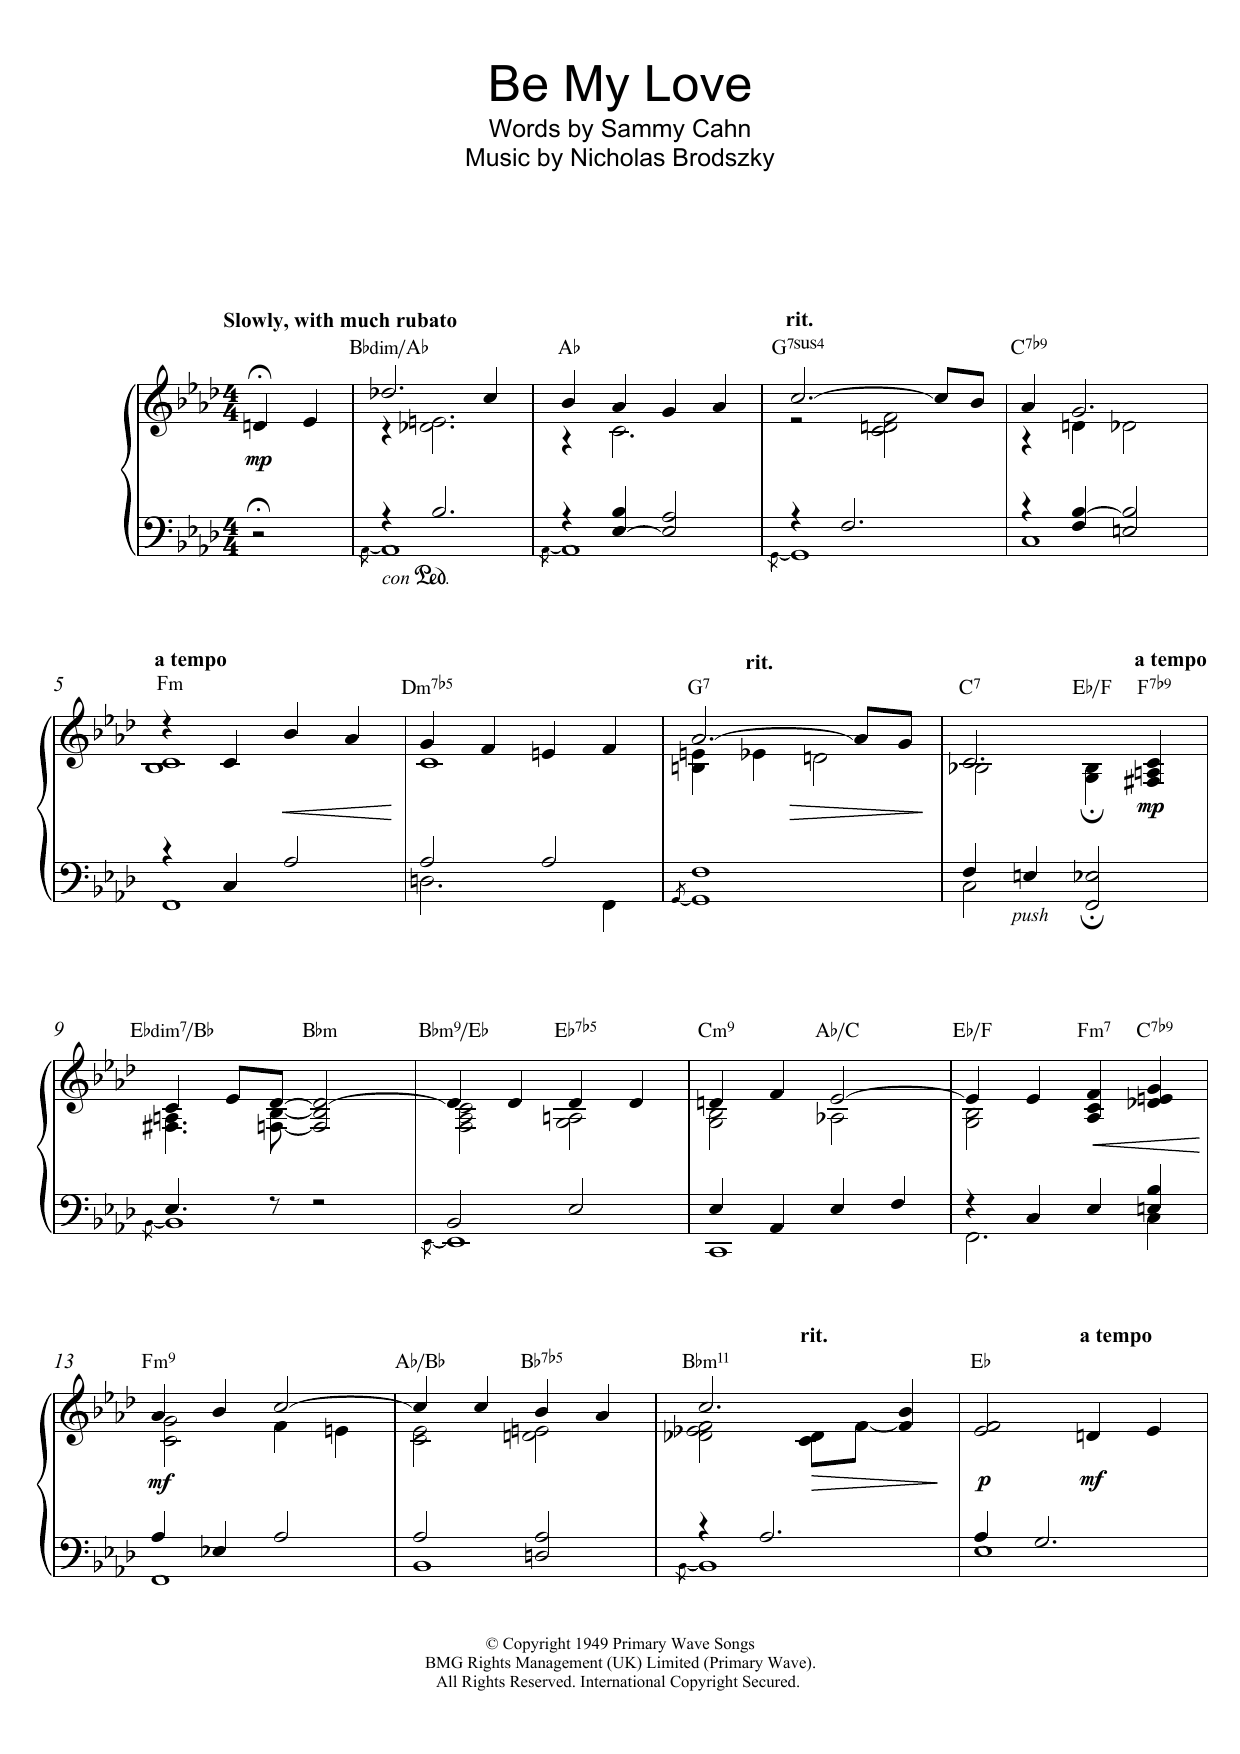 Be My Love Sheet Music